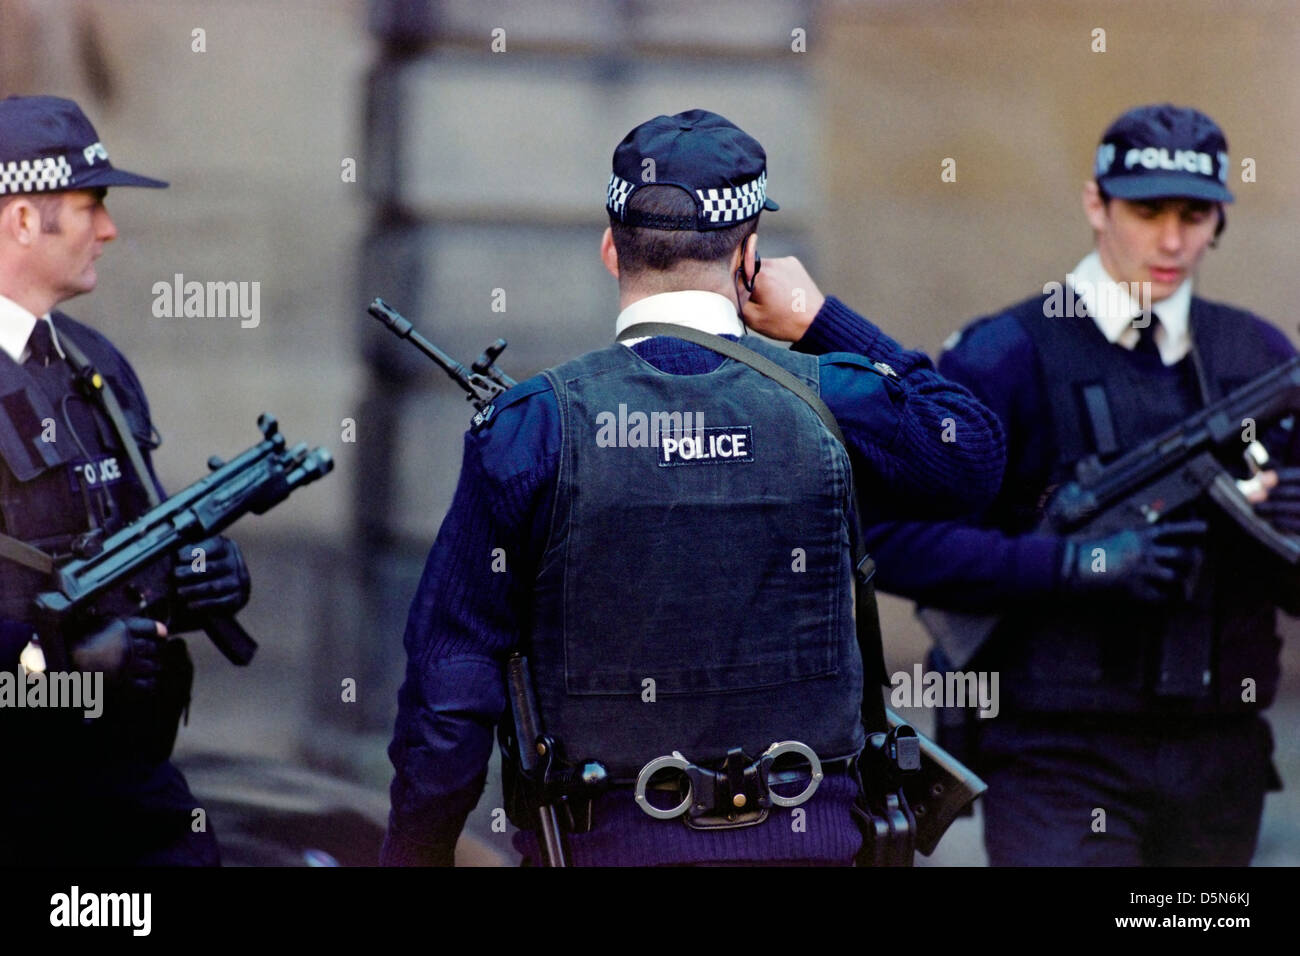 Armed police deployed outside the High Court in Edinburgh, Scotland. - Stock Image